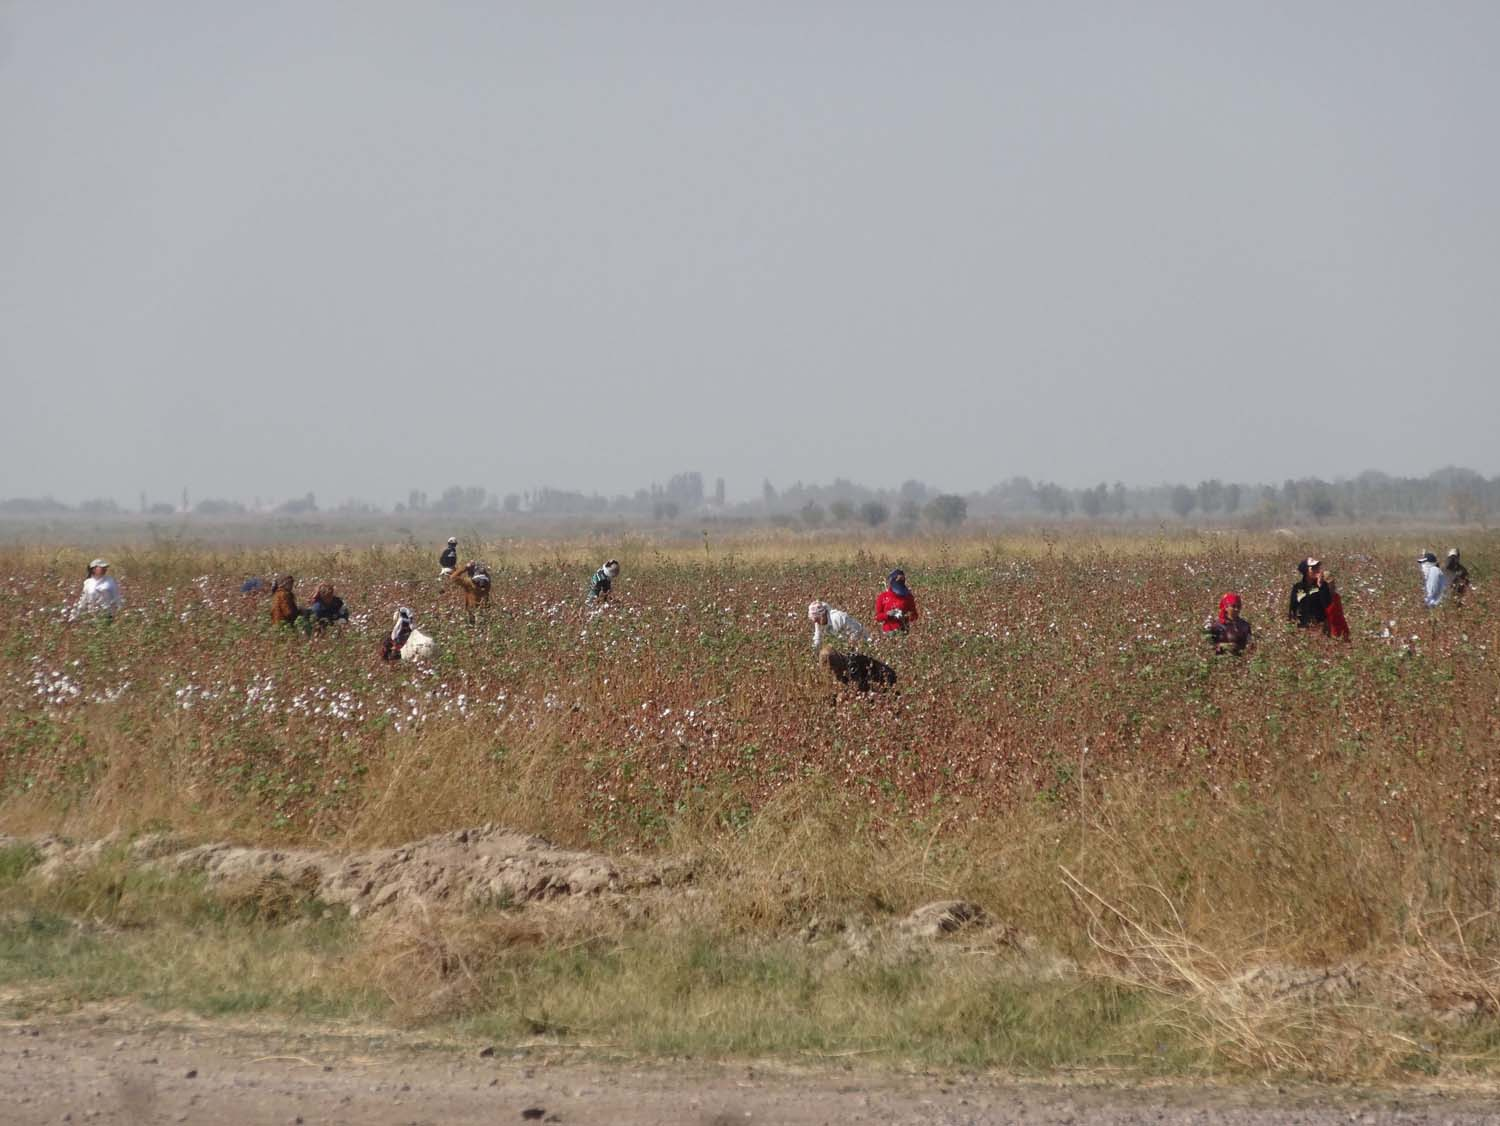 cotton pickers hard at work to reach their qouta